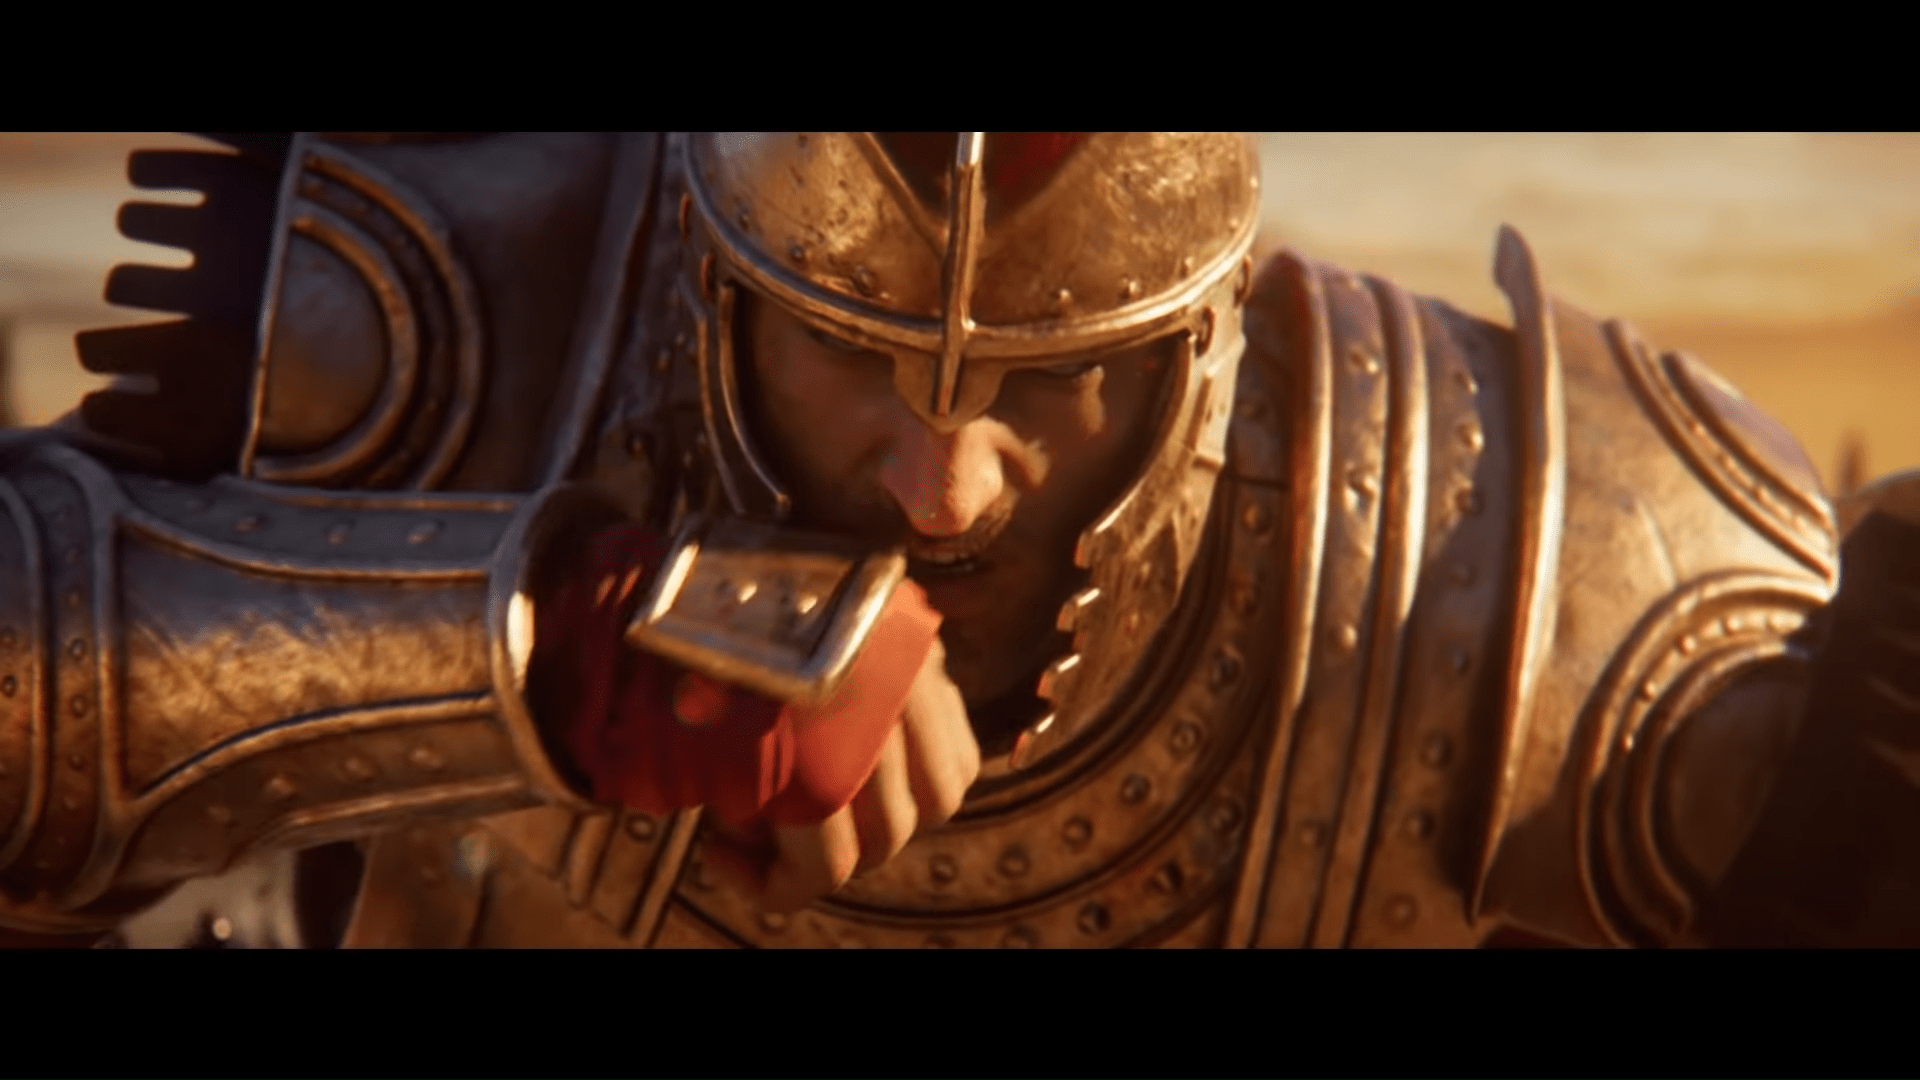 A Total War Saga: TROY Gets An Announce Trailer And Campaign Map Trailer – A Suitably Epic First Look At A Game Inspired By Homer's Iliad